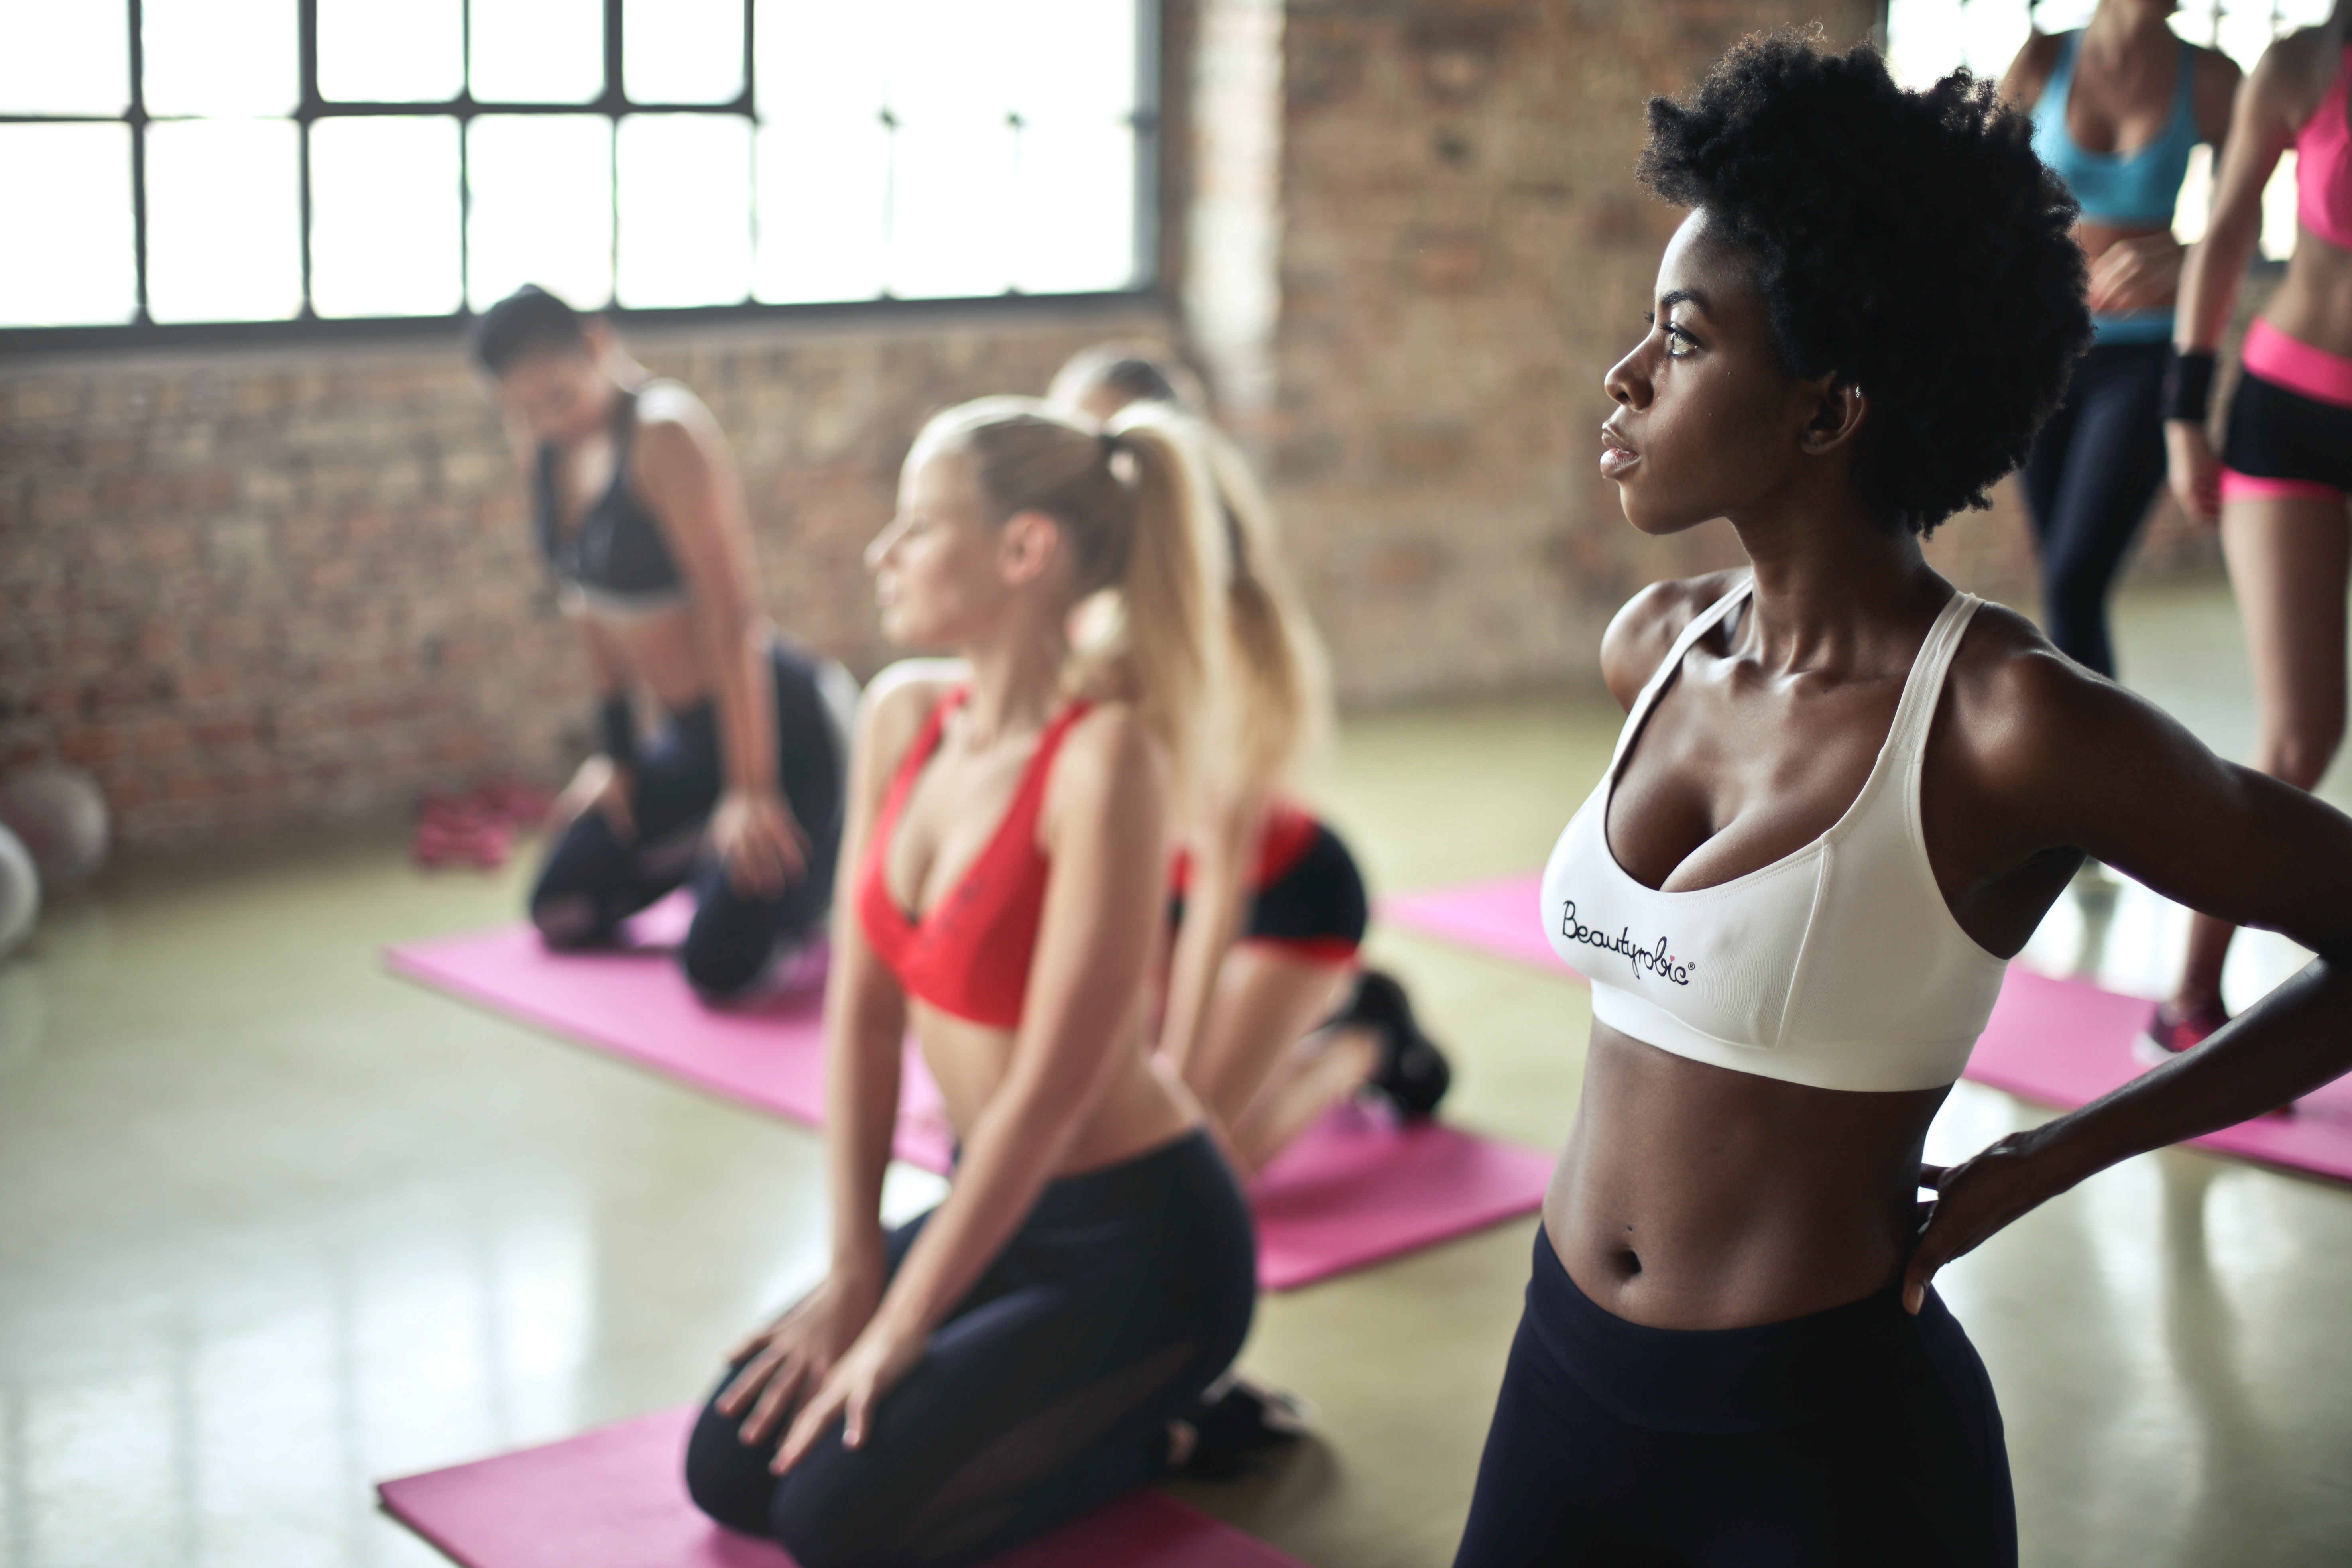 Exercise alone will not maintain weight